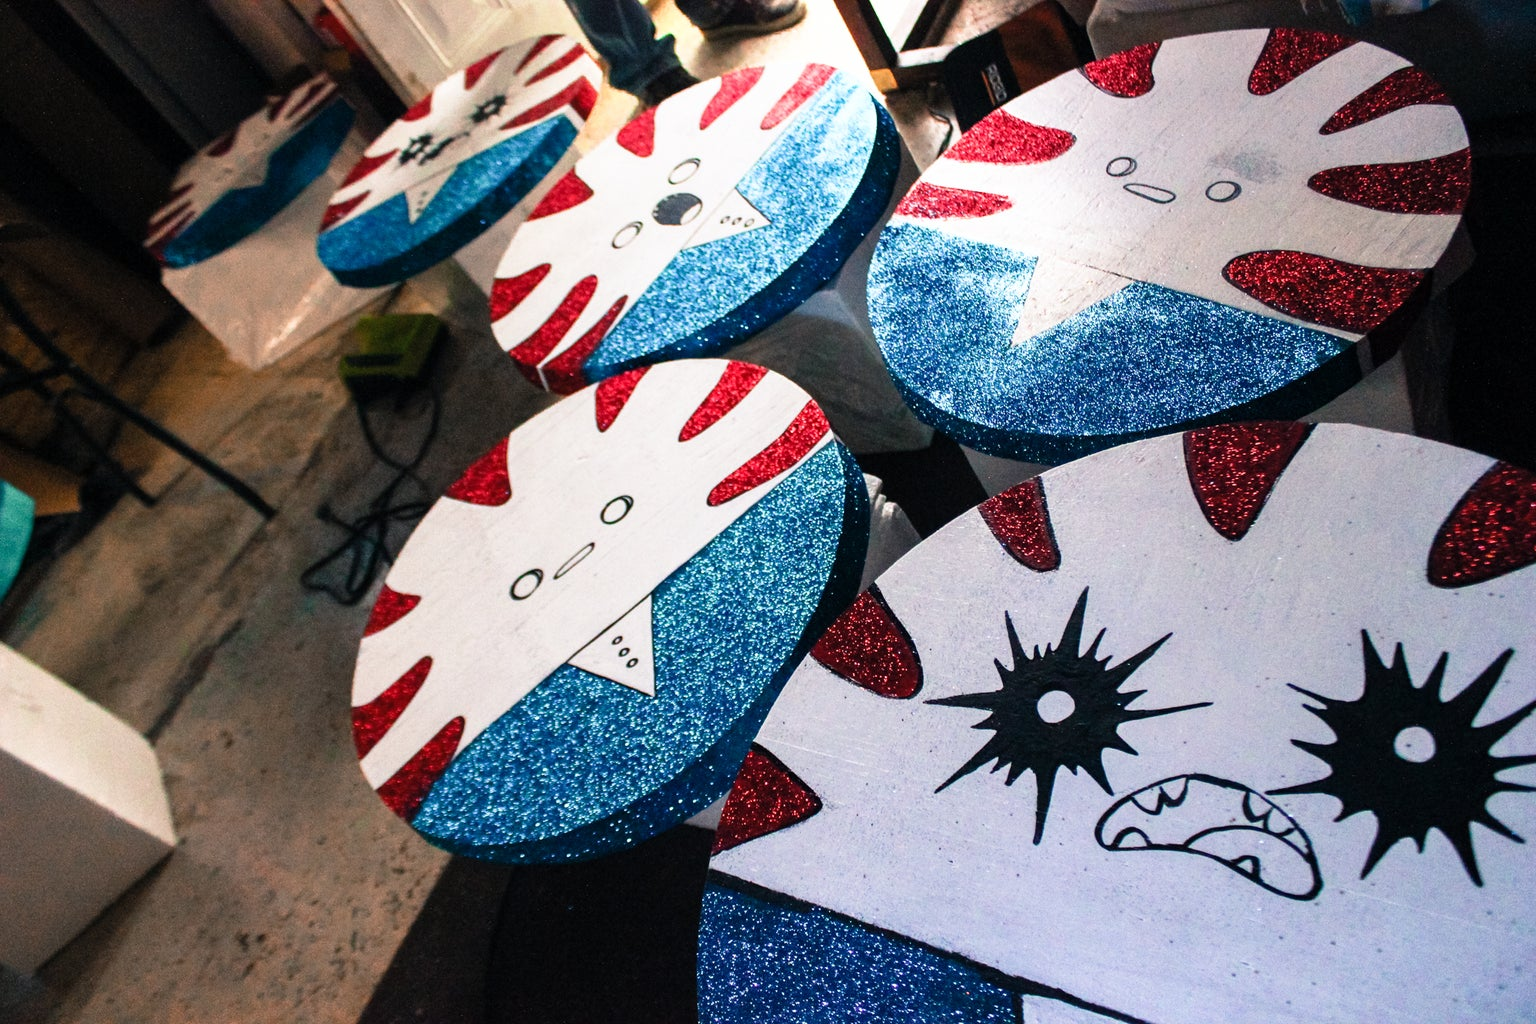 Draw, Paint & Glitter the Characters